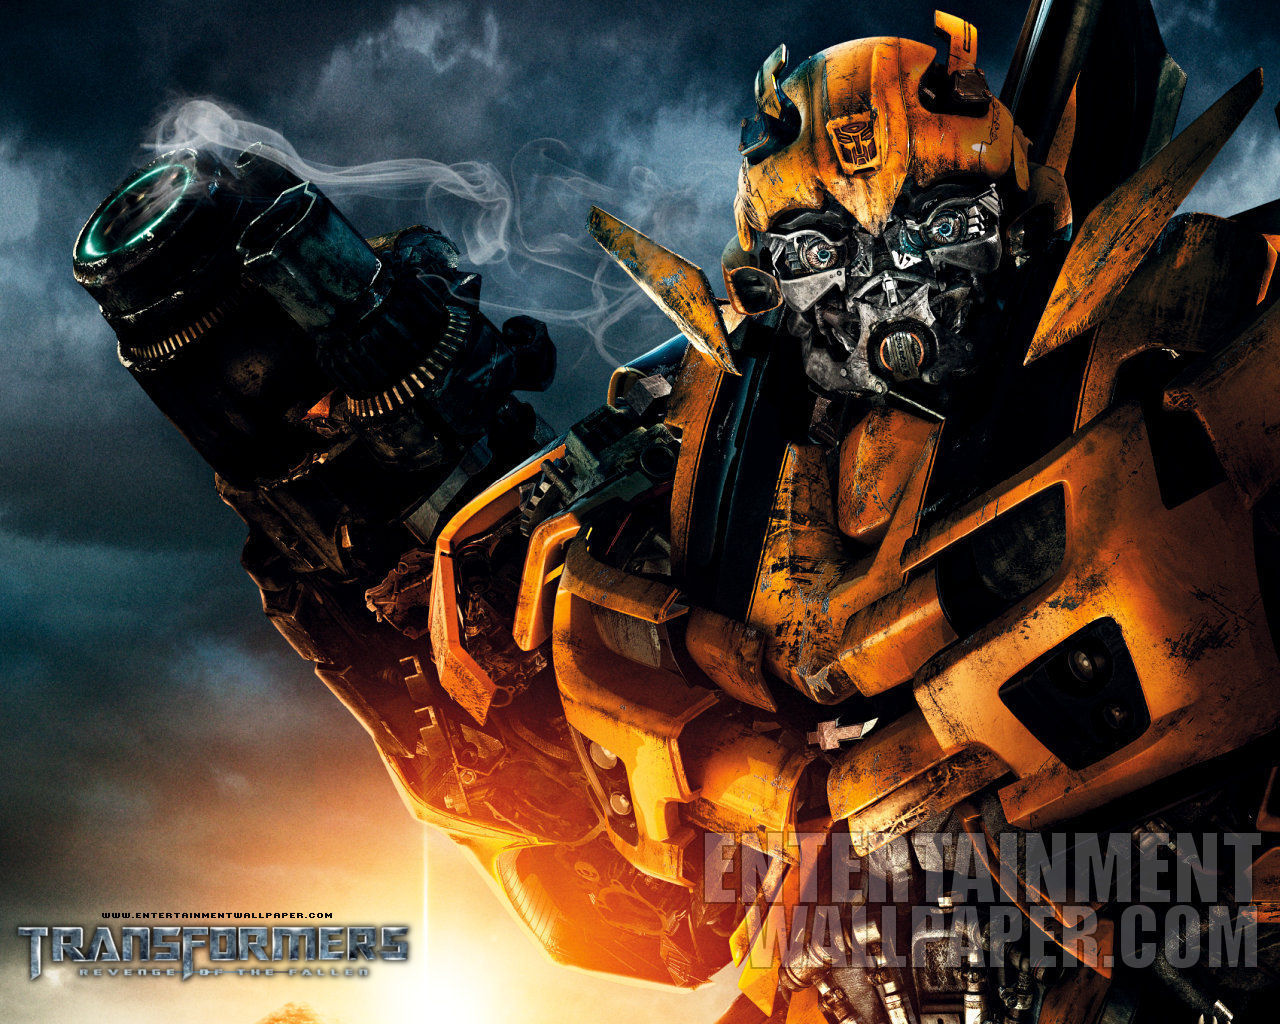 Transformers Revenge of the Fallen  Upcoming Movies